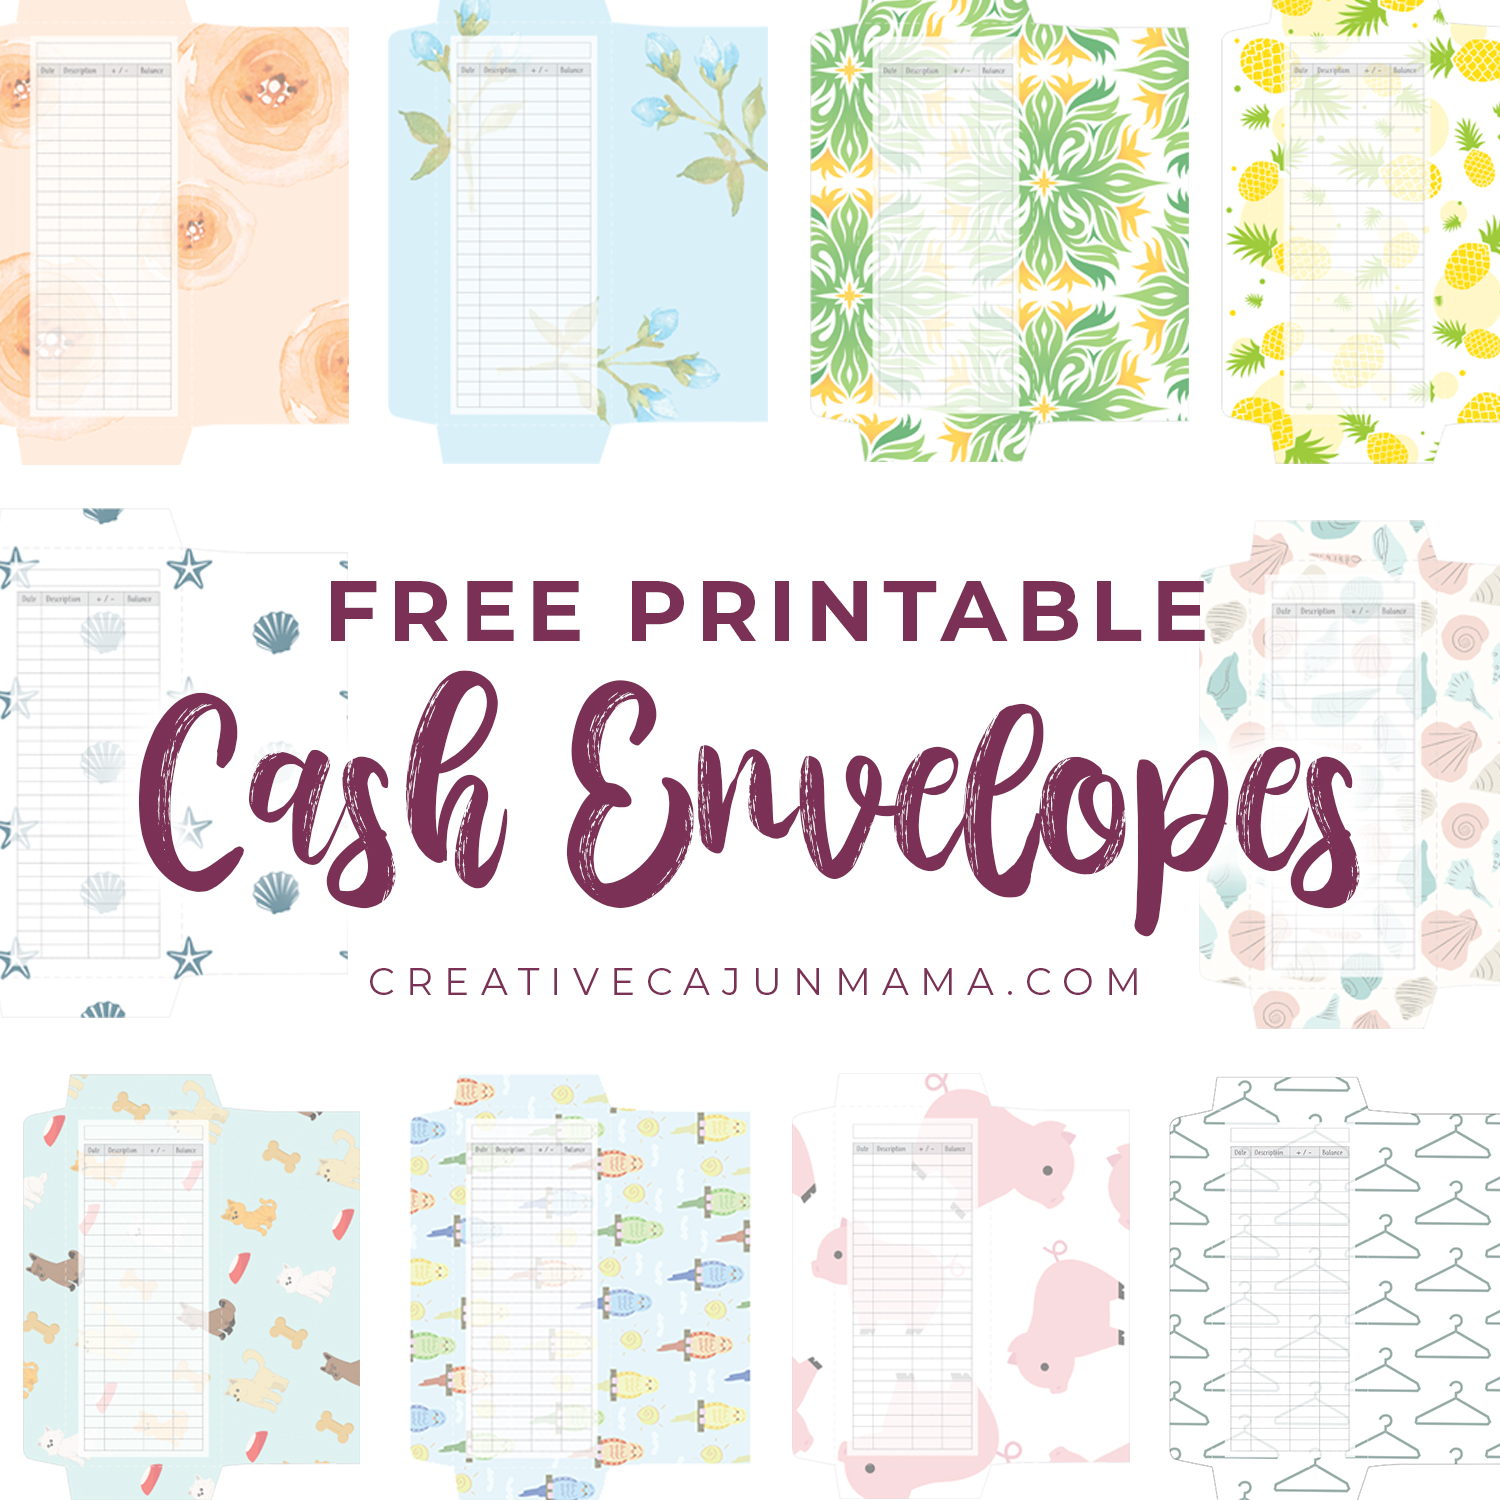 This is an image of Satisfactory Free Printable Cash Envelopes